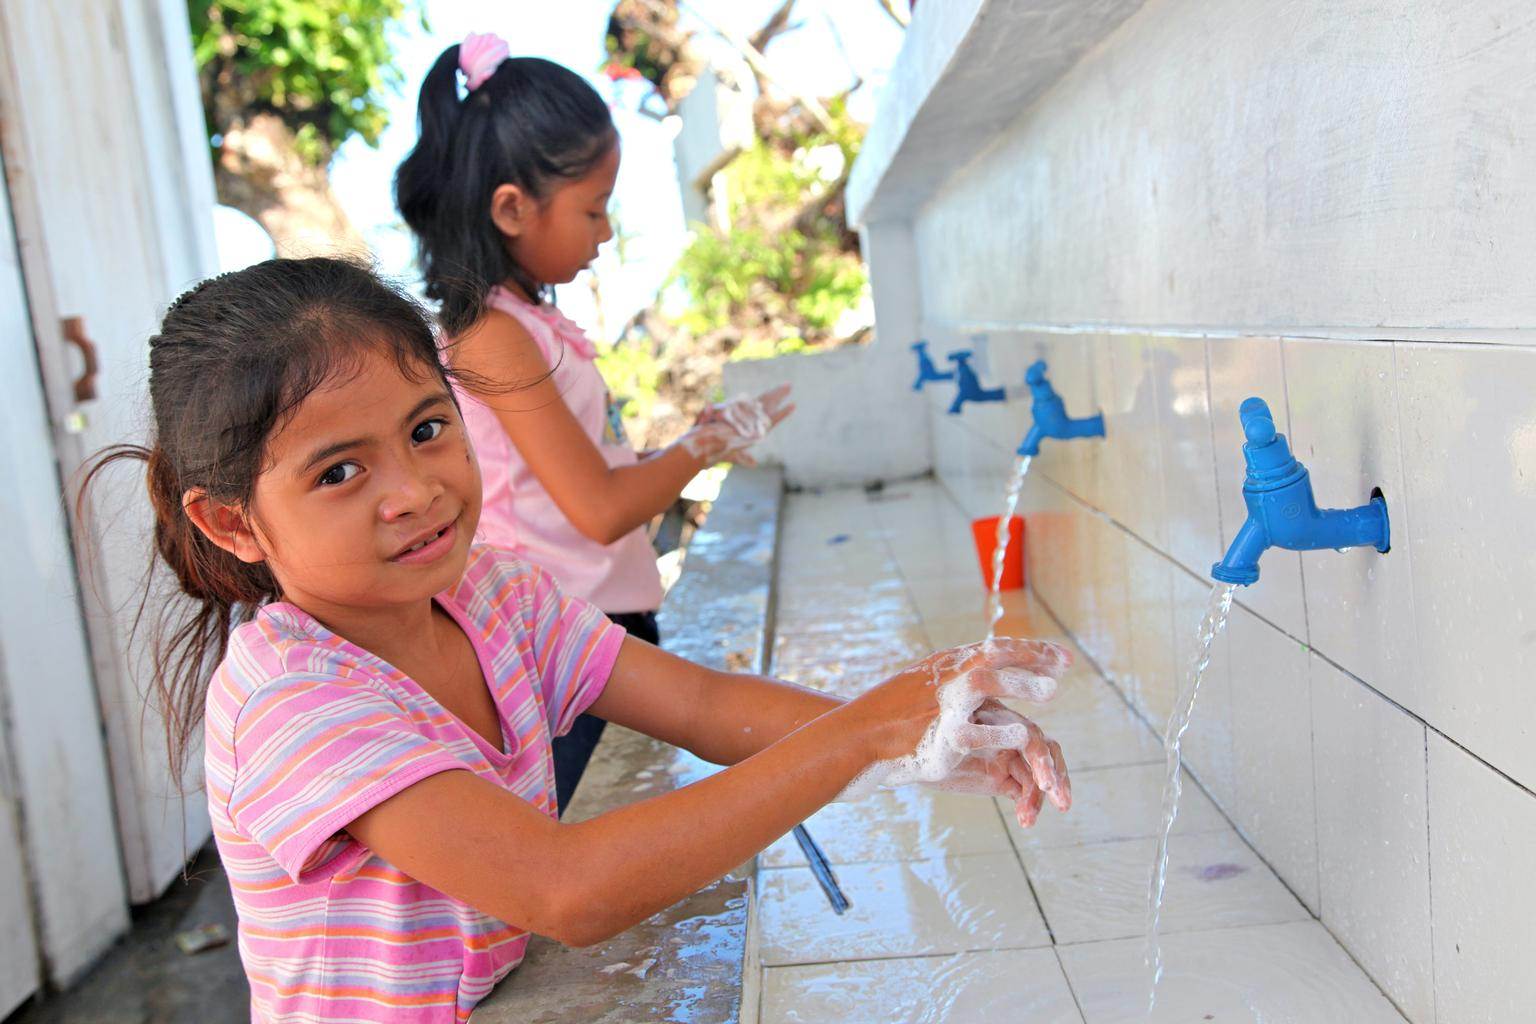 Venus (8) washes her hands with soap and water at a new hand-washing facility at her school in the Philippines.